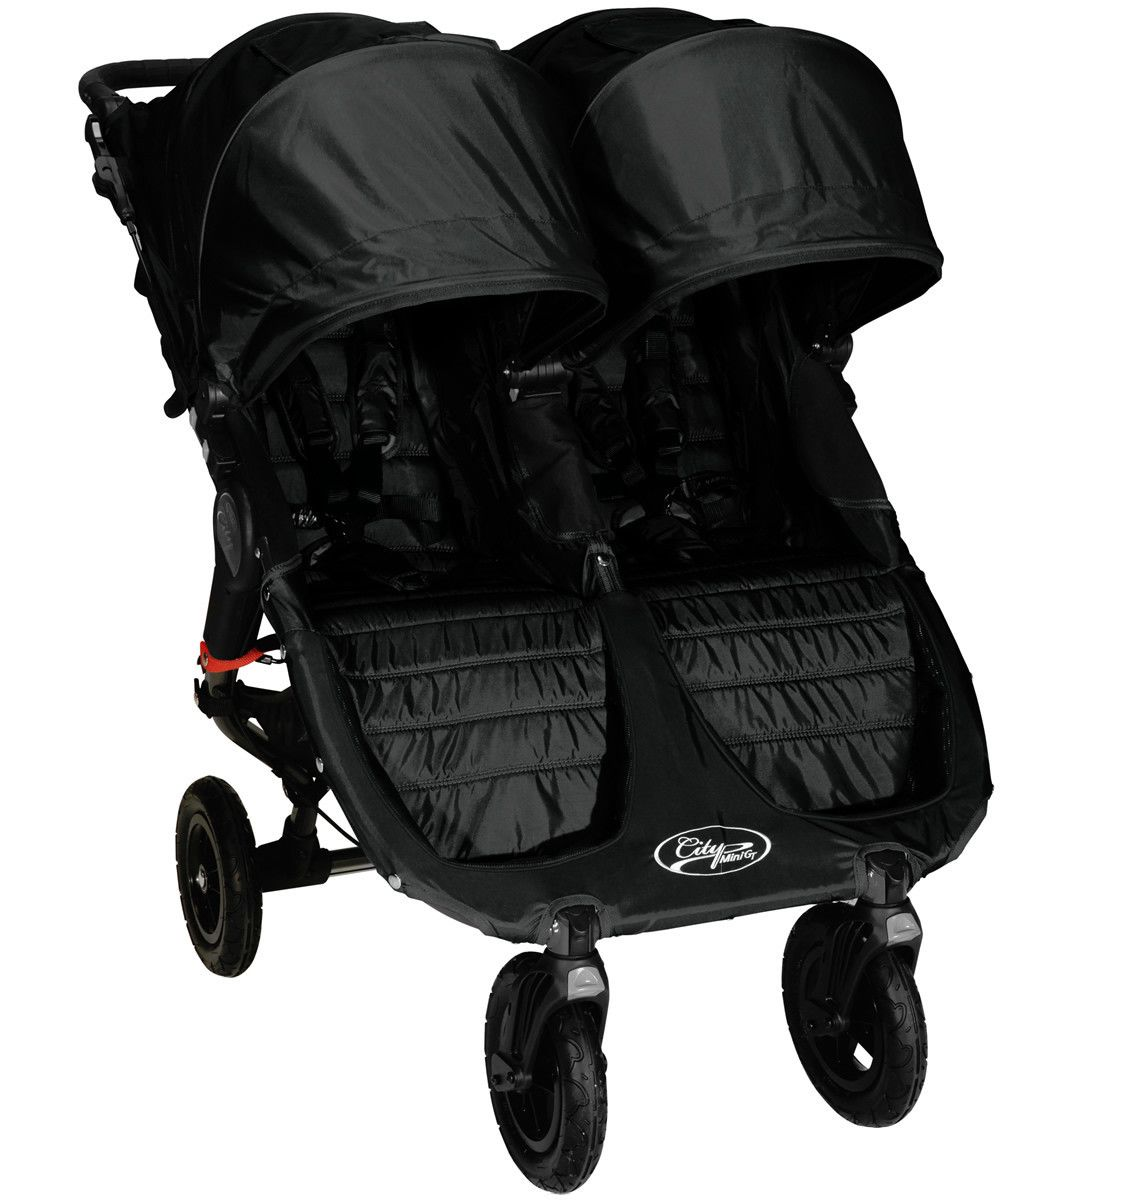 City Mini GT Double Stroller Rental Baby jogger city